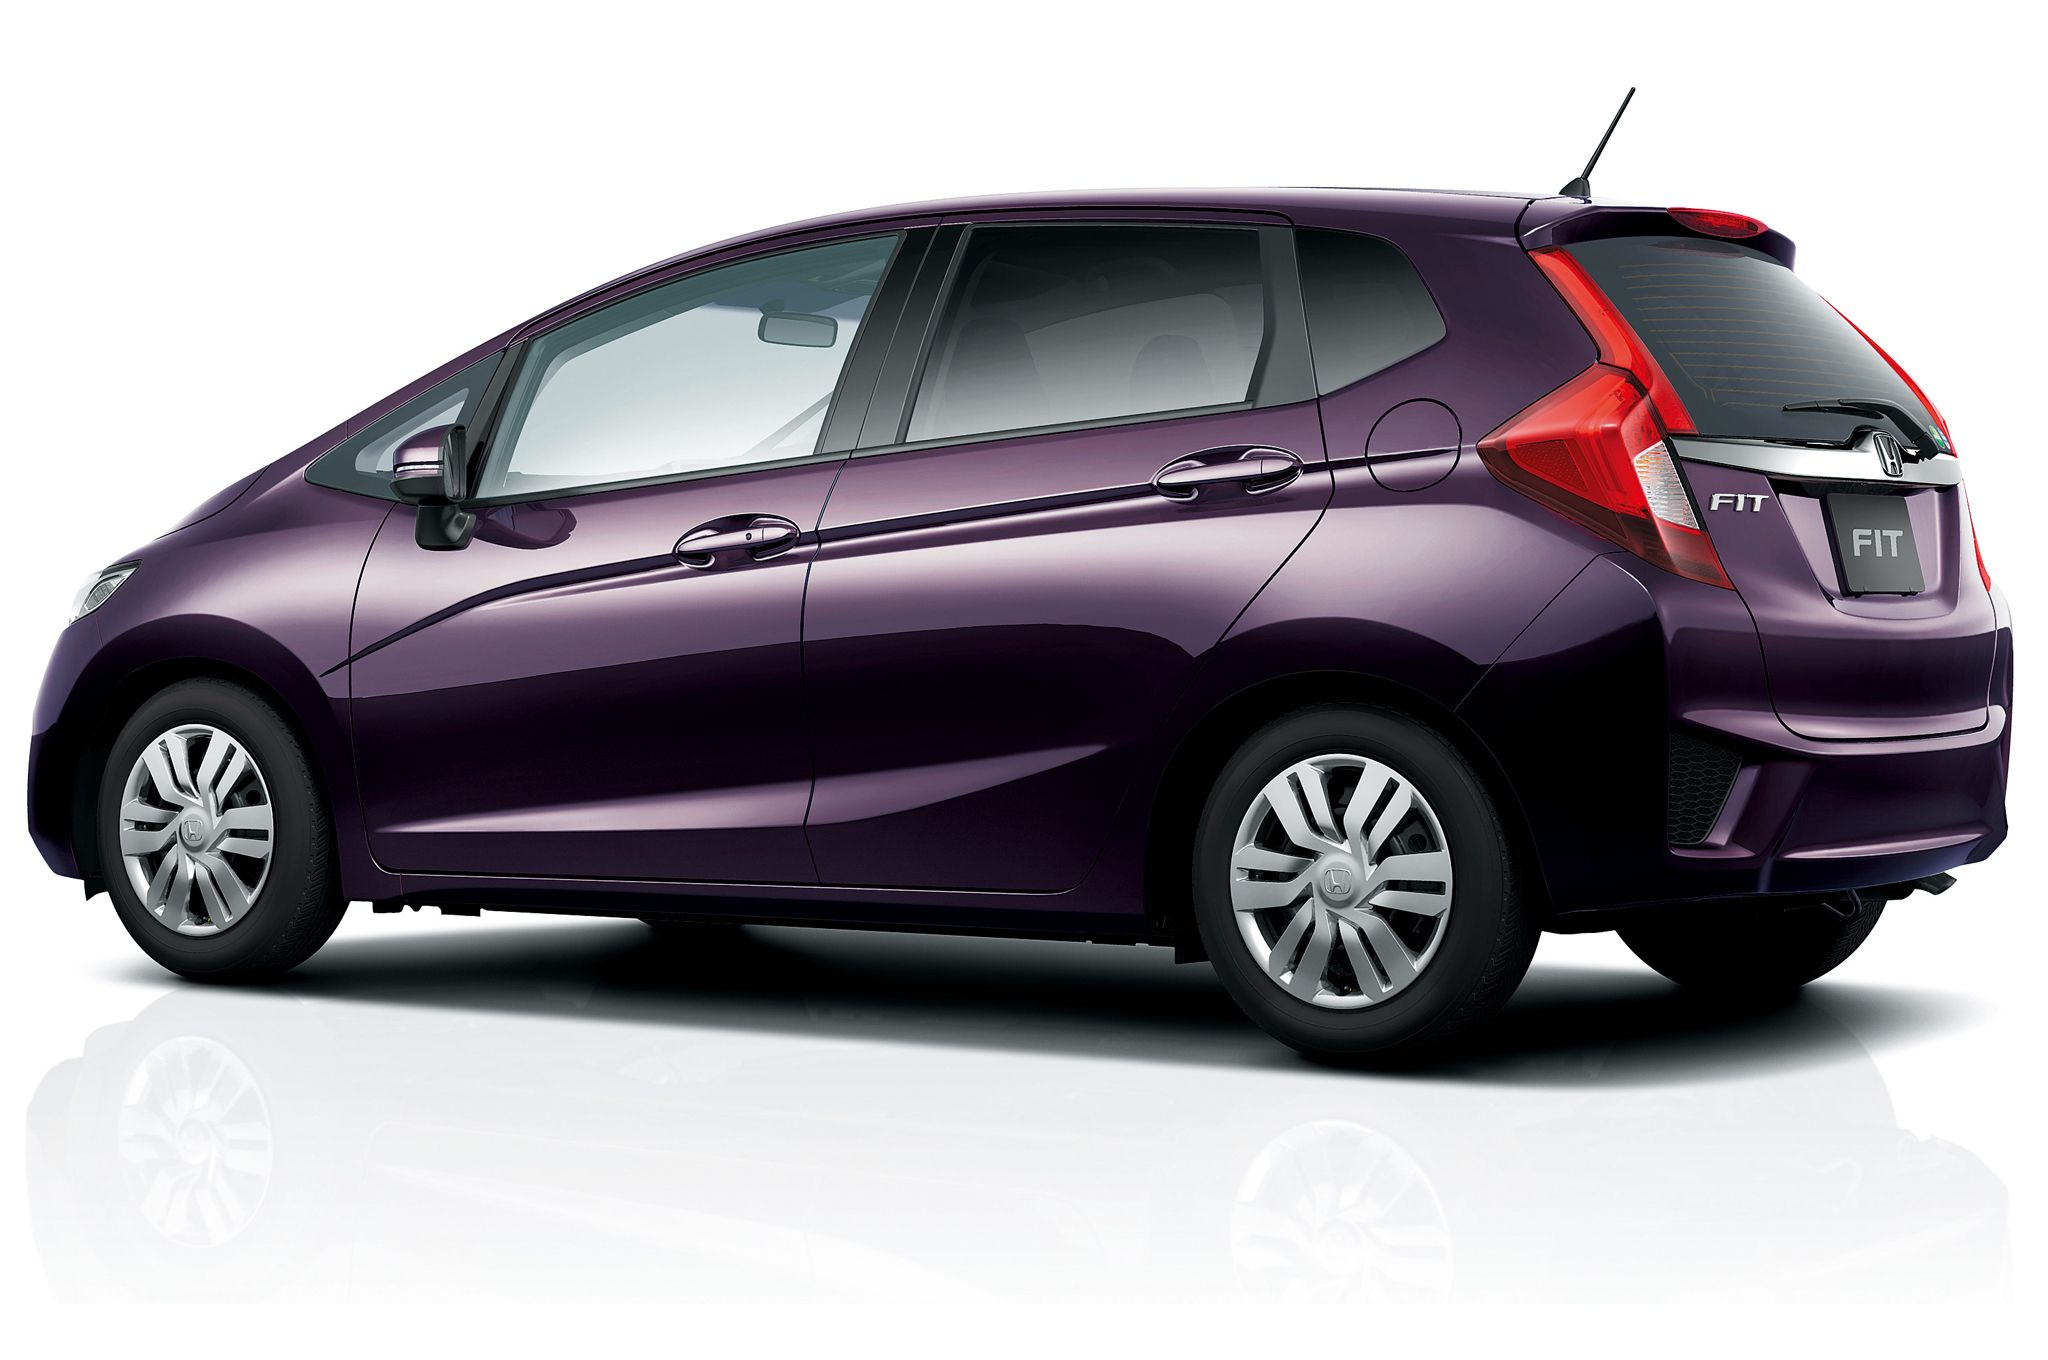 Honda Fit 2015 With A Cvt Passion Berry Pearl 33 41 36 Mpg This Color Is Amazing Living In Texas It Is Not A Good Id Honda Fit 2015 Honda Fit Honda Fit Hybrid